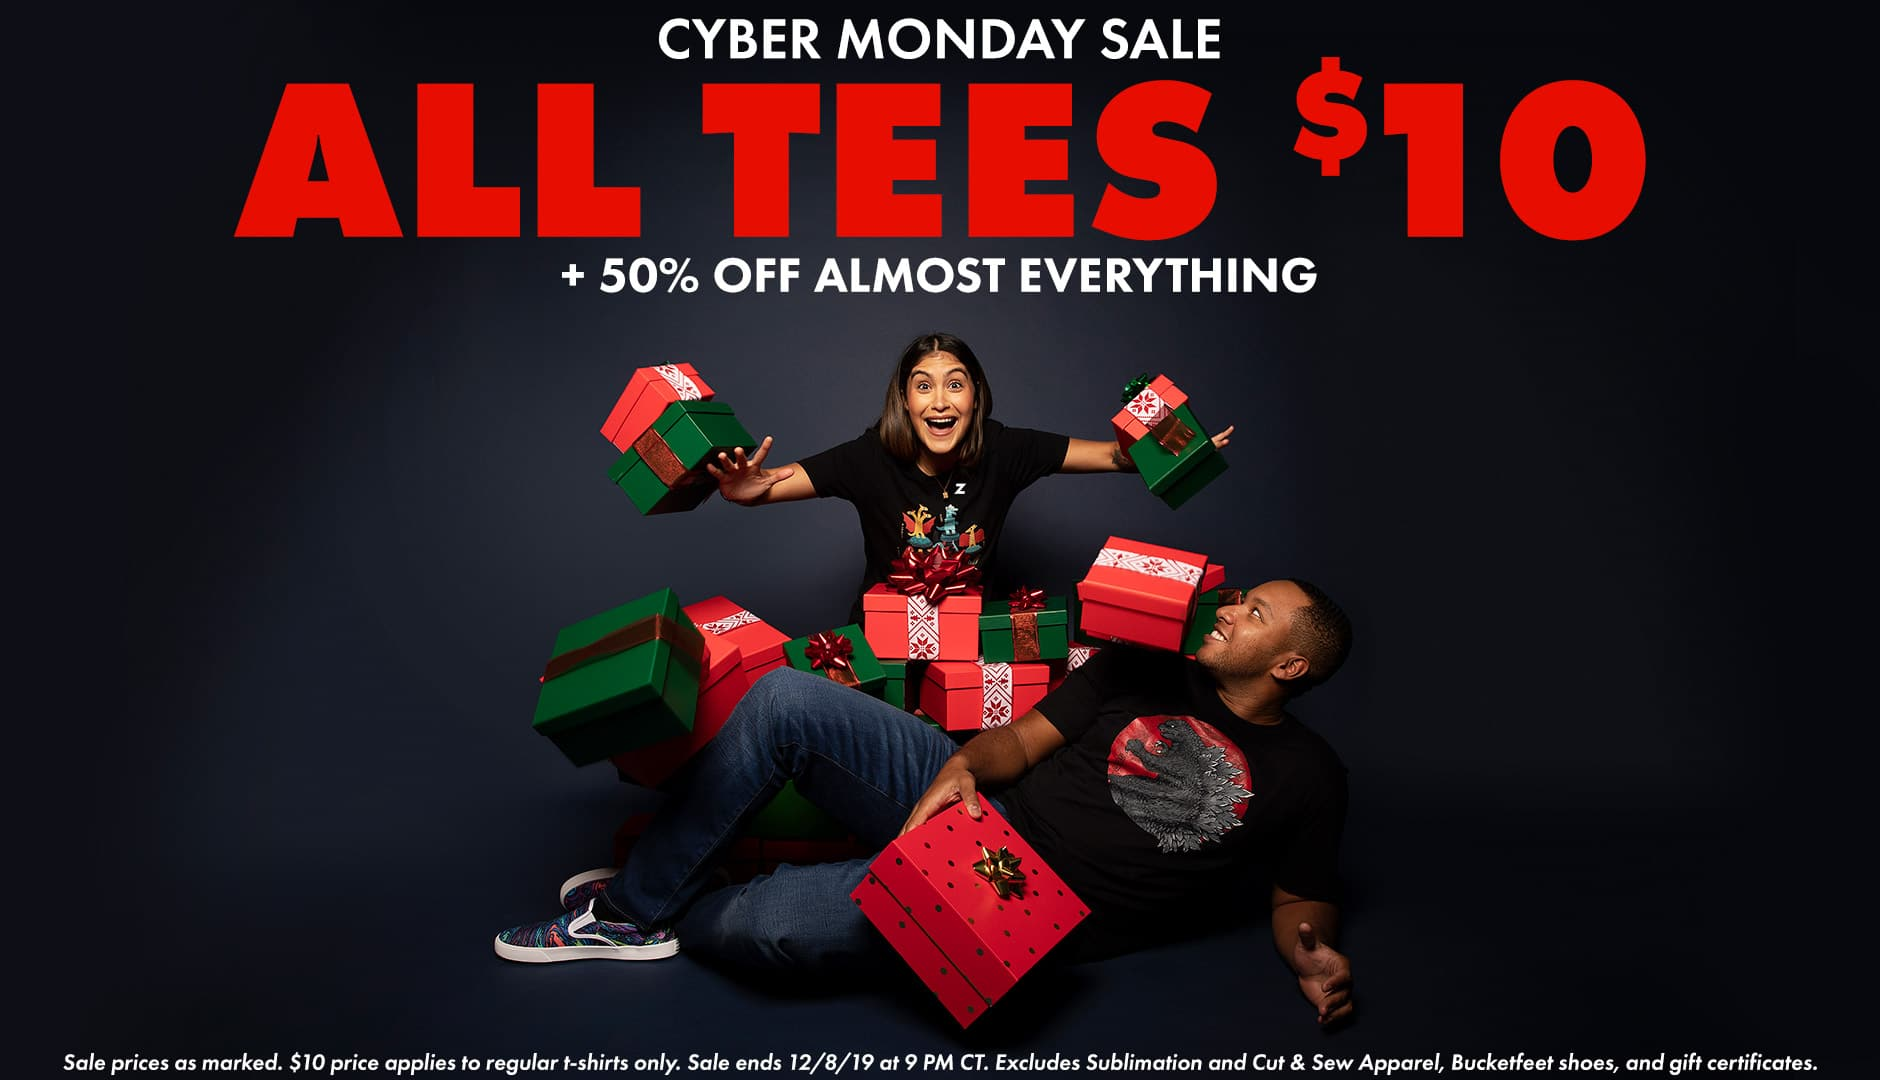 Shop Cyber Monday $10 Tees!